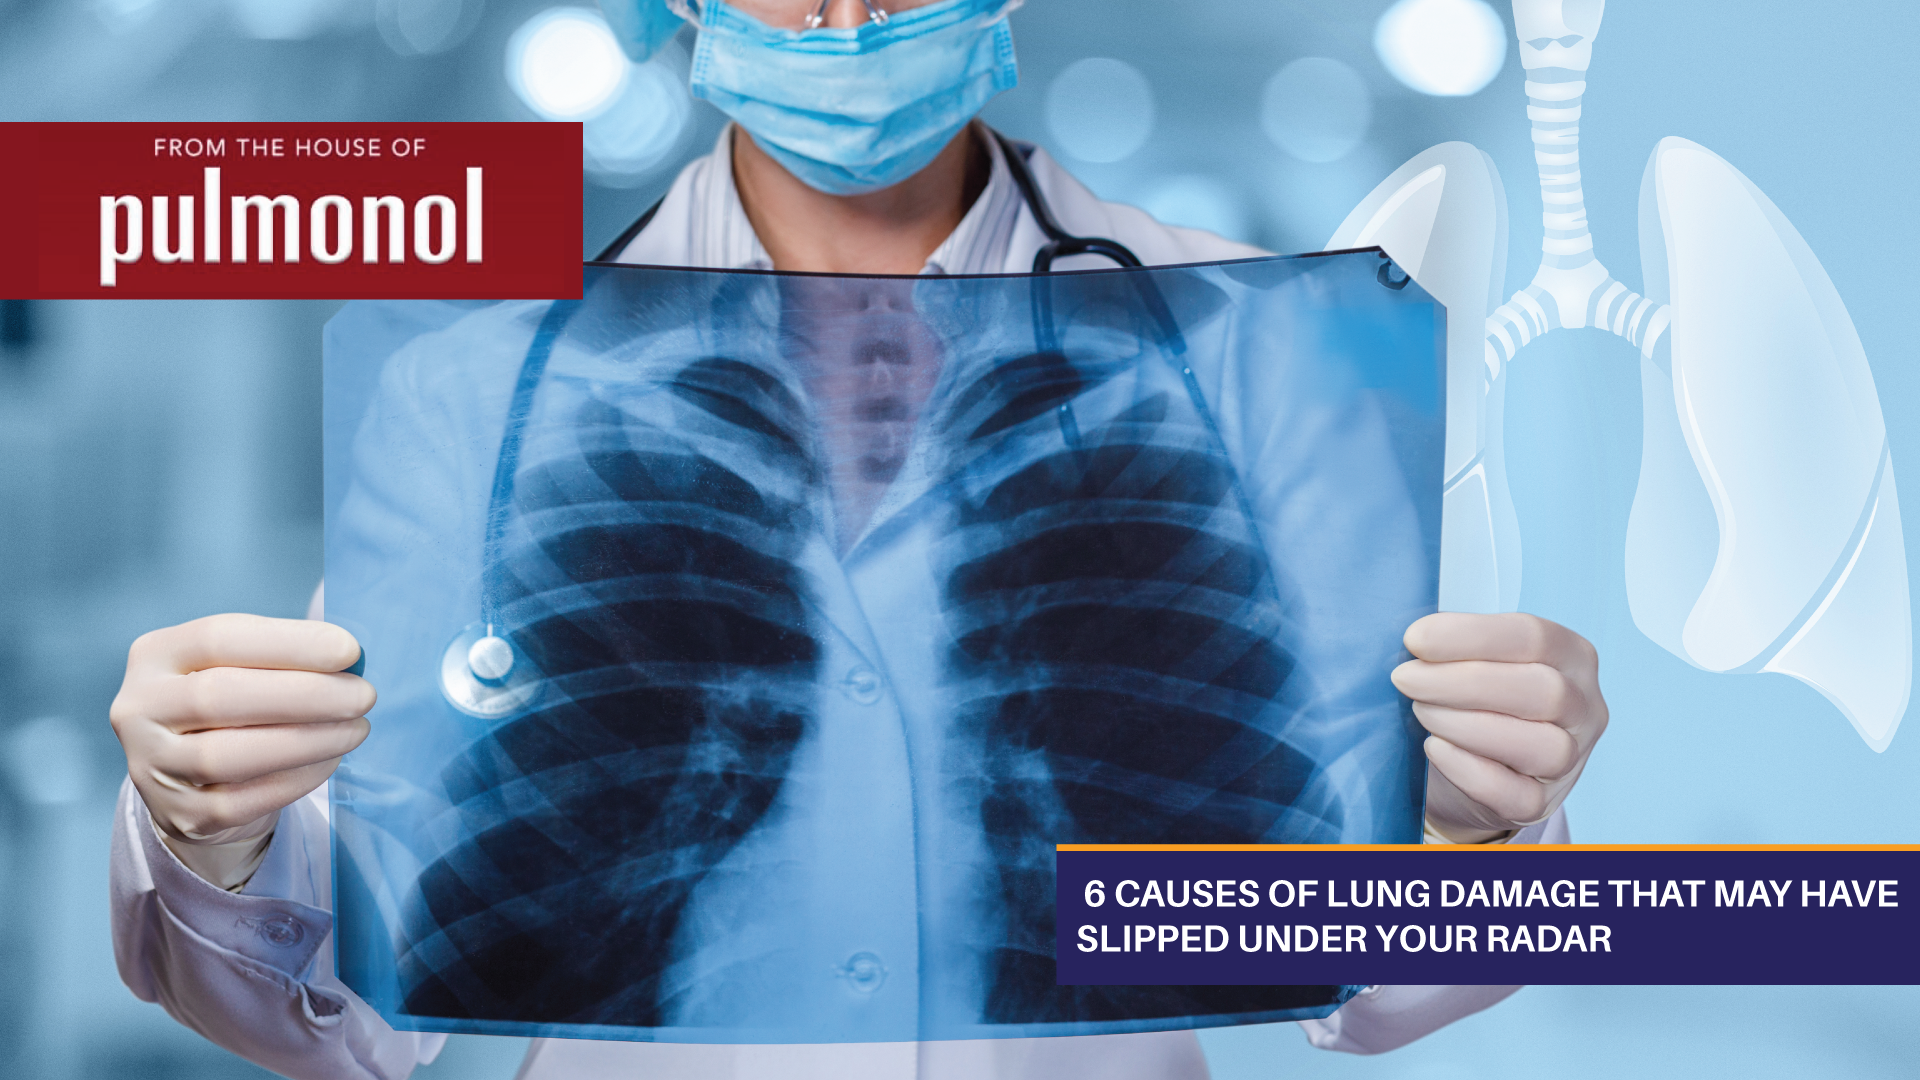 6 Causes of Lung Damage That May Have Slipped Under Your Radar